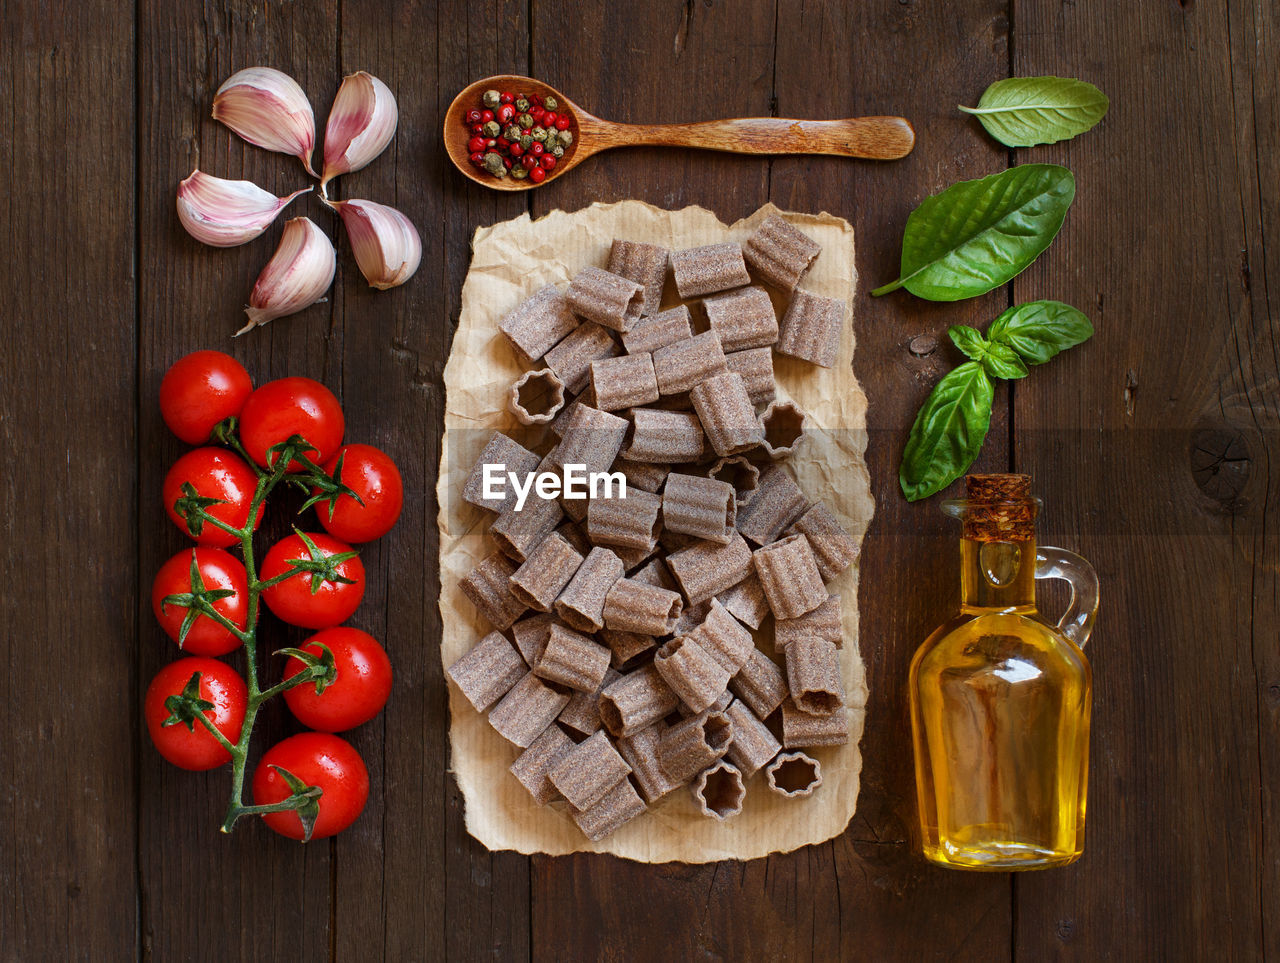 food, food and drink, tomato, vegetable, freshness, directly above, wood - material, healthy eating, wellbeing, indoors, fruit, ingredient, no people, spice, herb, red, large group of objects, table, high angle view, basil, preparation, preparing food